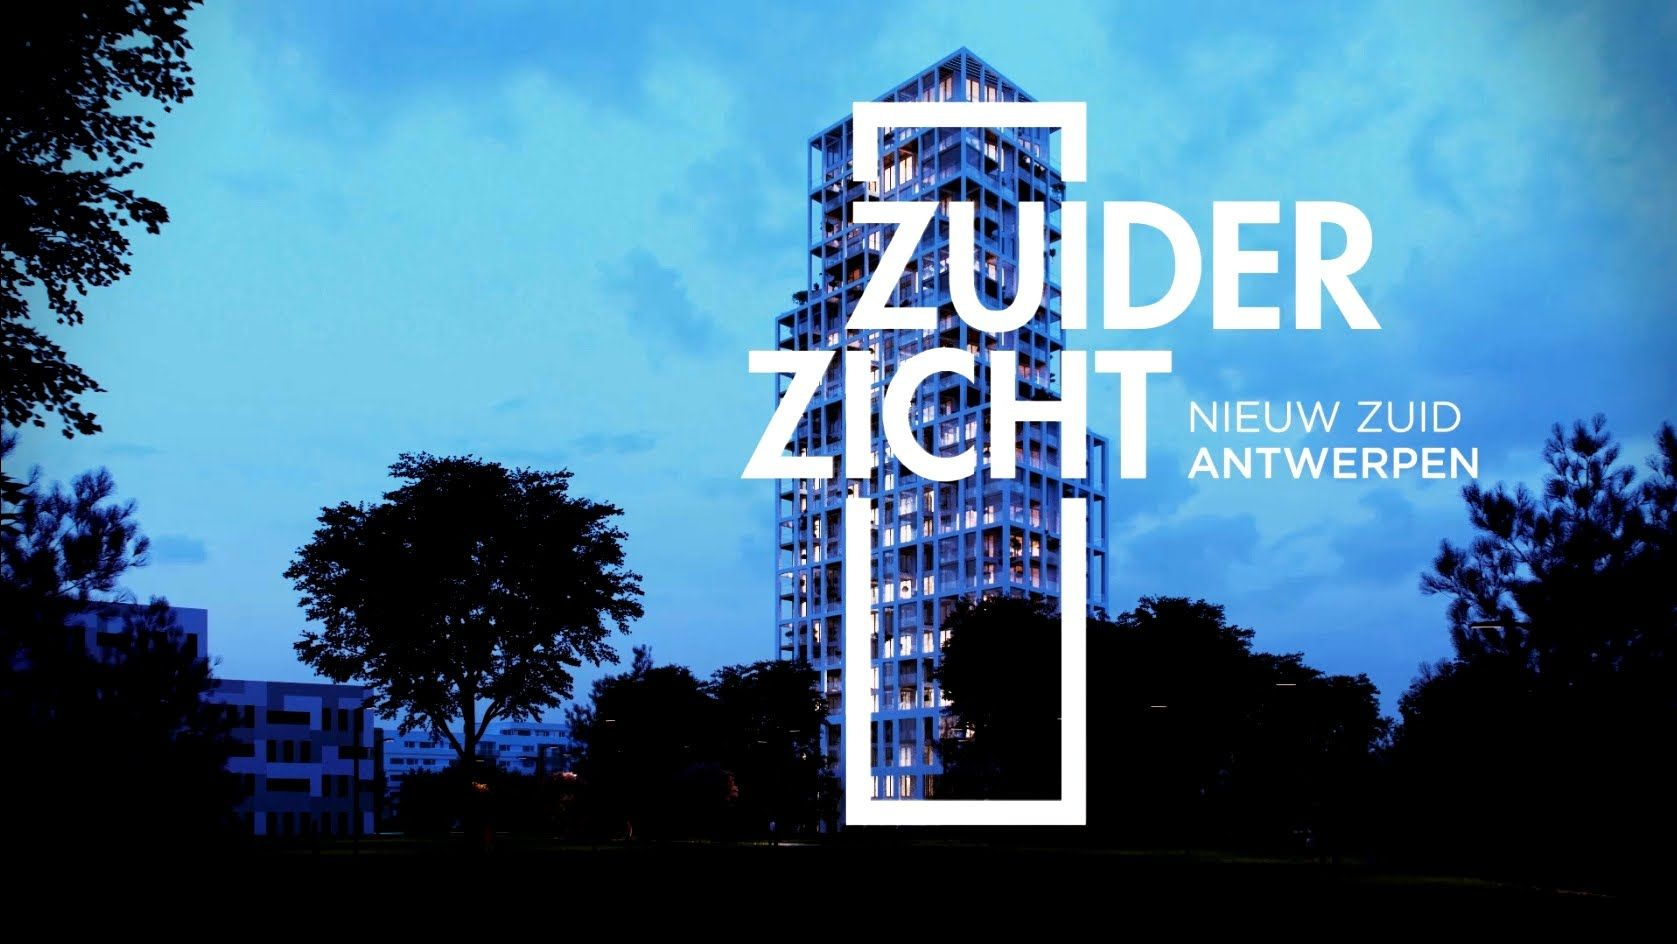 evr-Architecten Zuiderzicht (South View) opens the door to a different way of living. Sustainable, green, human - In the middle of the city of Antwerpen and surrounded by na...